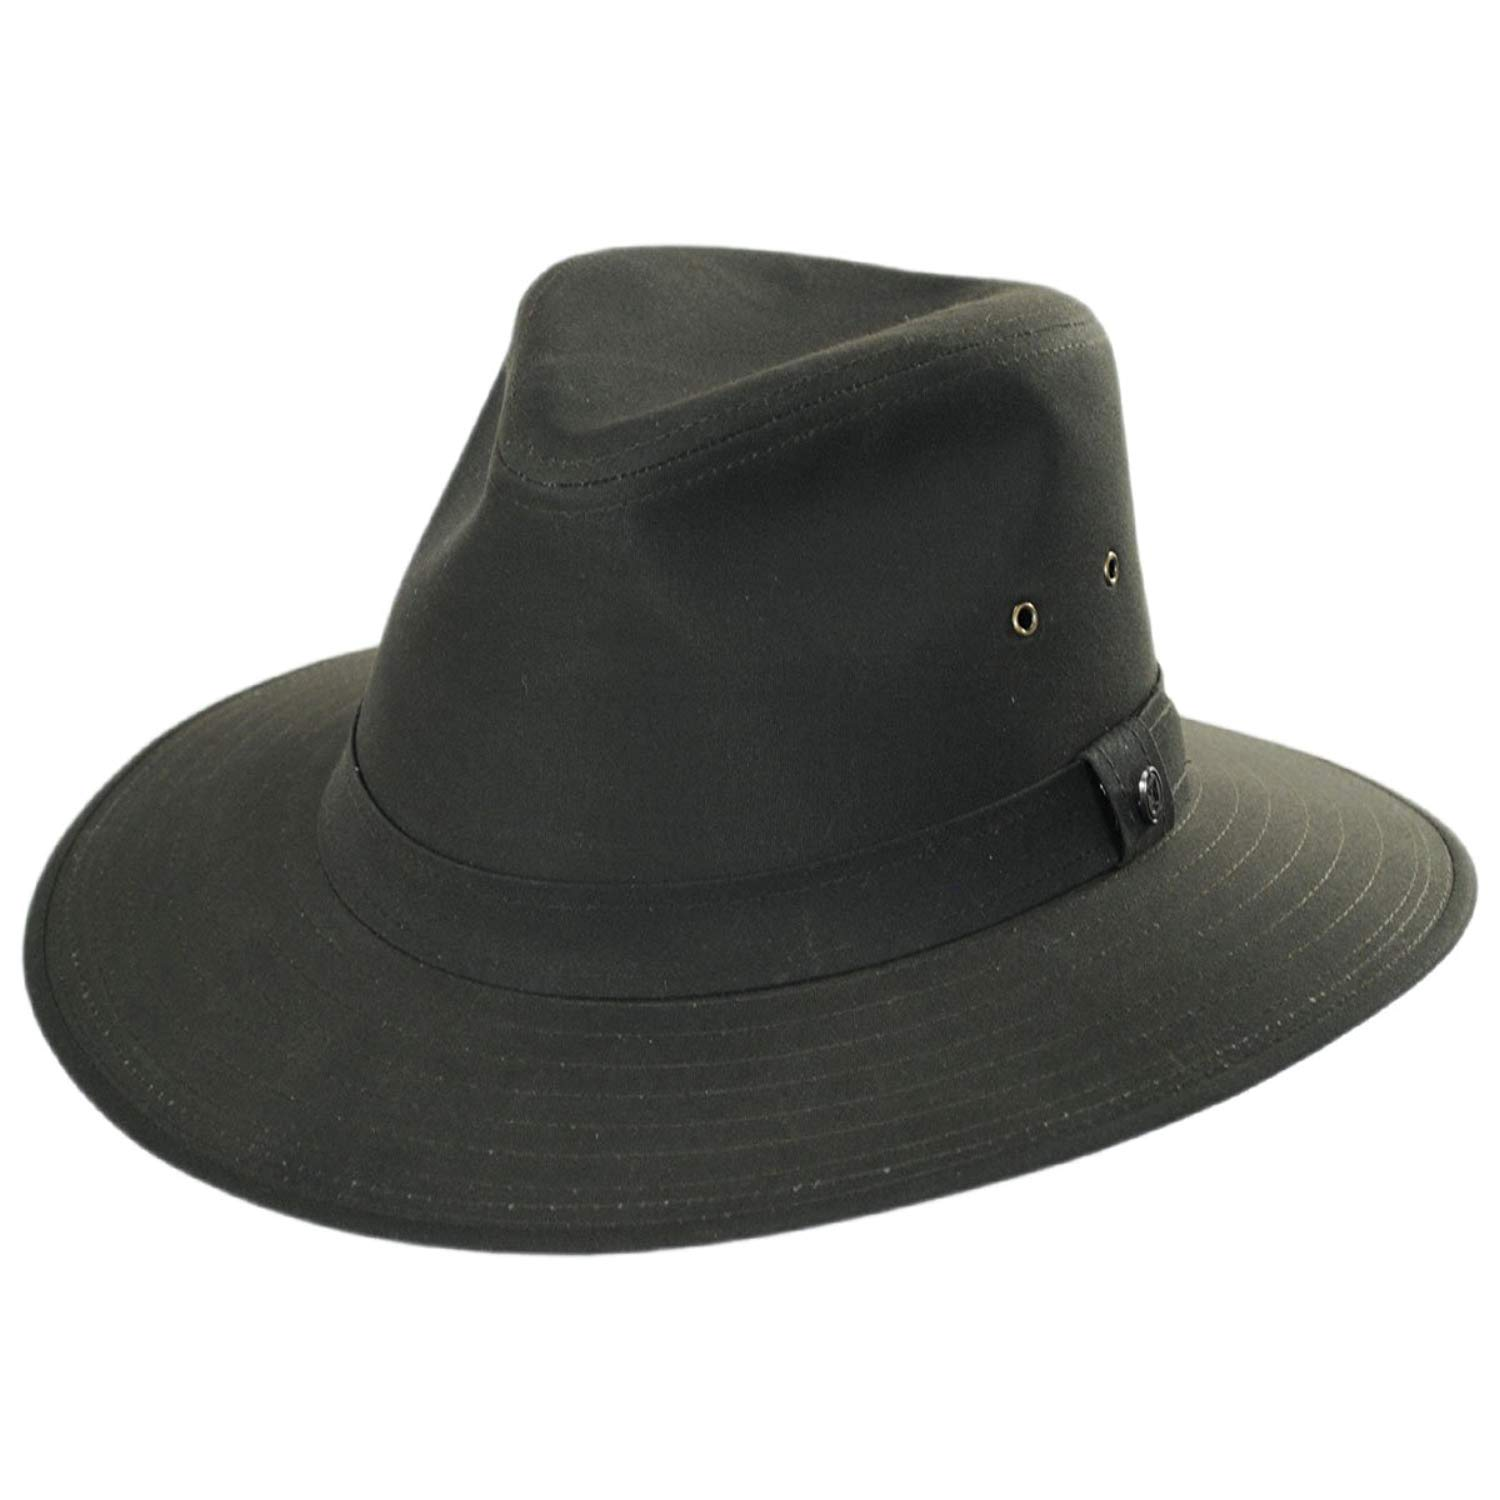 d9c5ec41 Buy Woolrich Mens Wax Cotton Safari Hat in Cheap Price on Alibaba.com